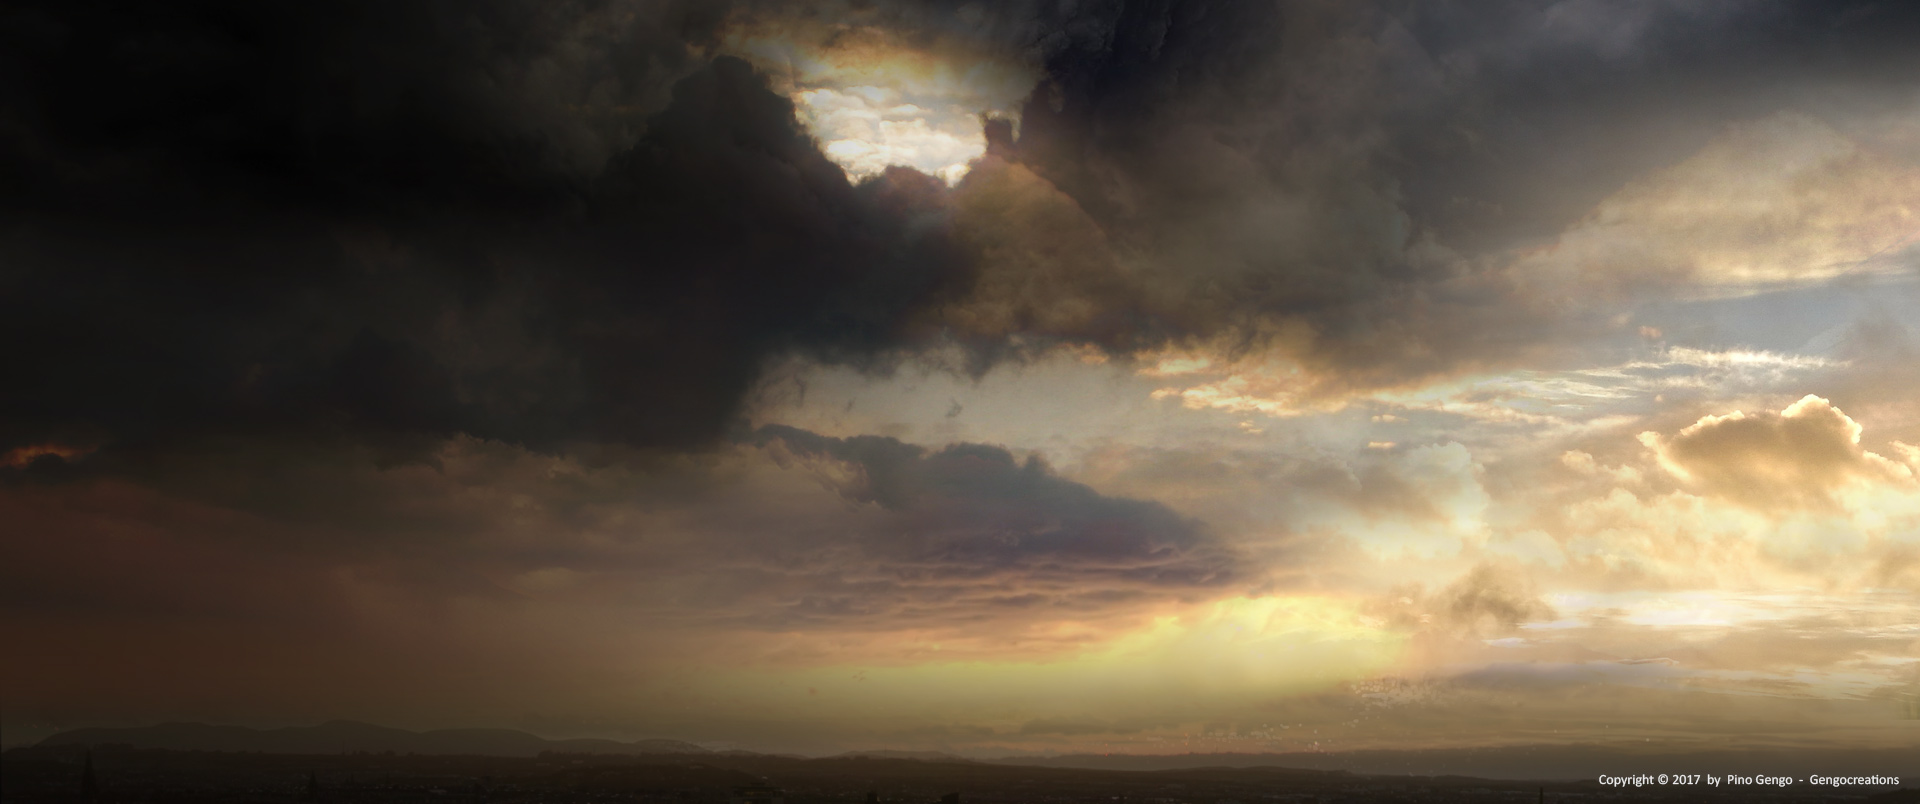 Pino Gengo: Sunset - Matte Painting